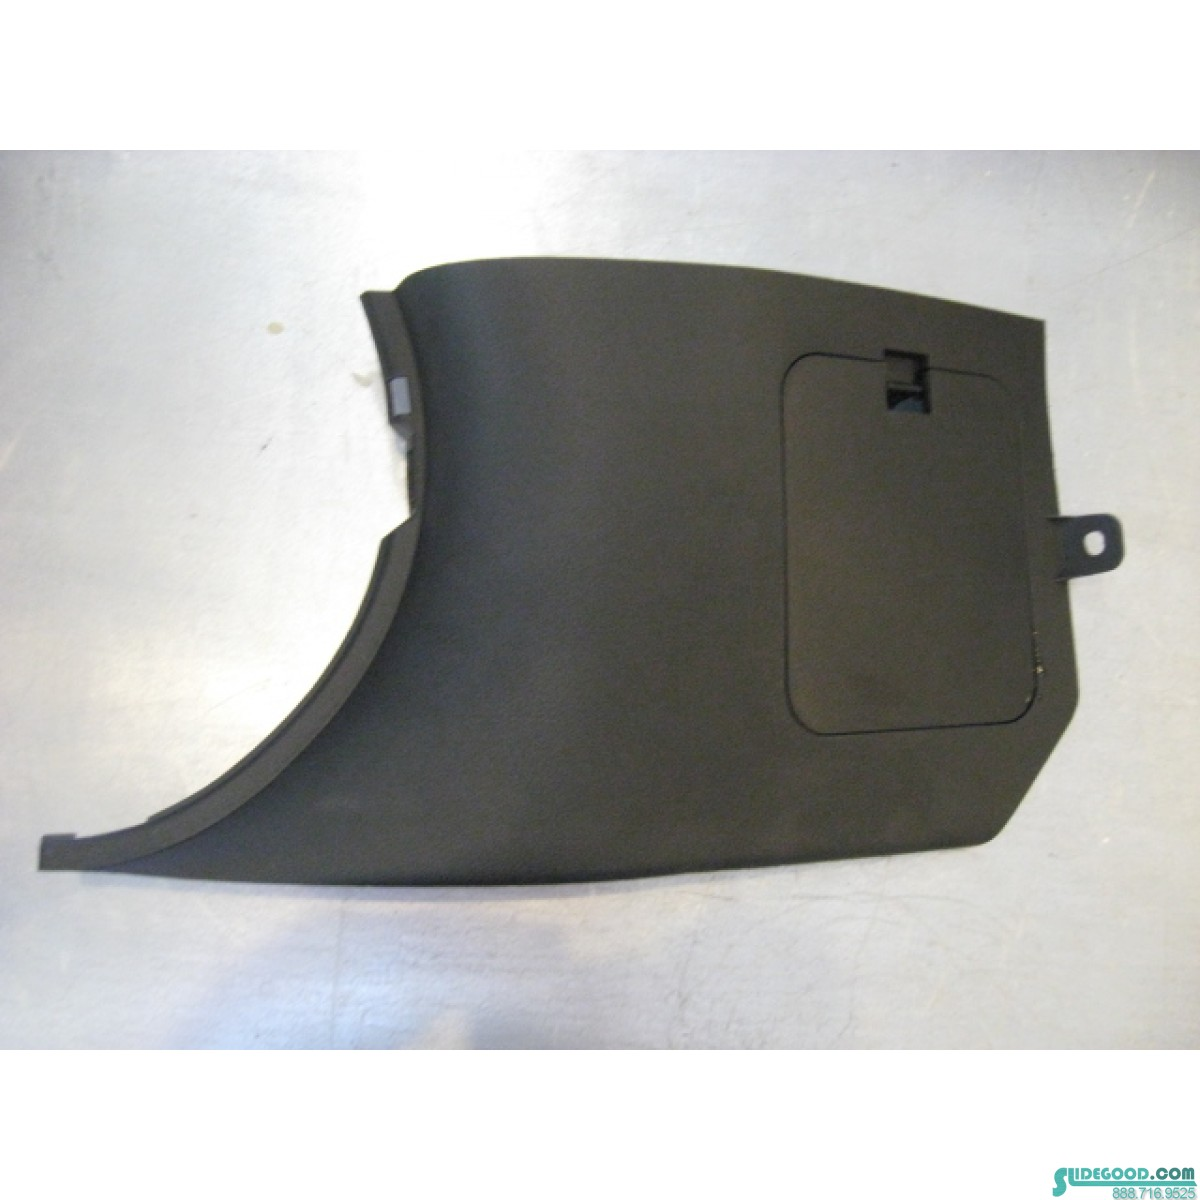 hight resolution of 08 nissan 350z lh fuse box trim cover 66901 cd000 r14769